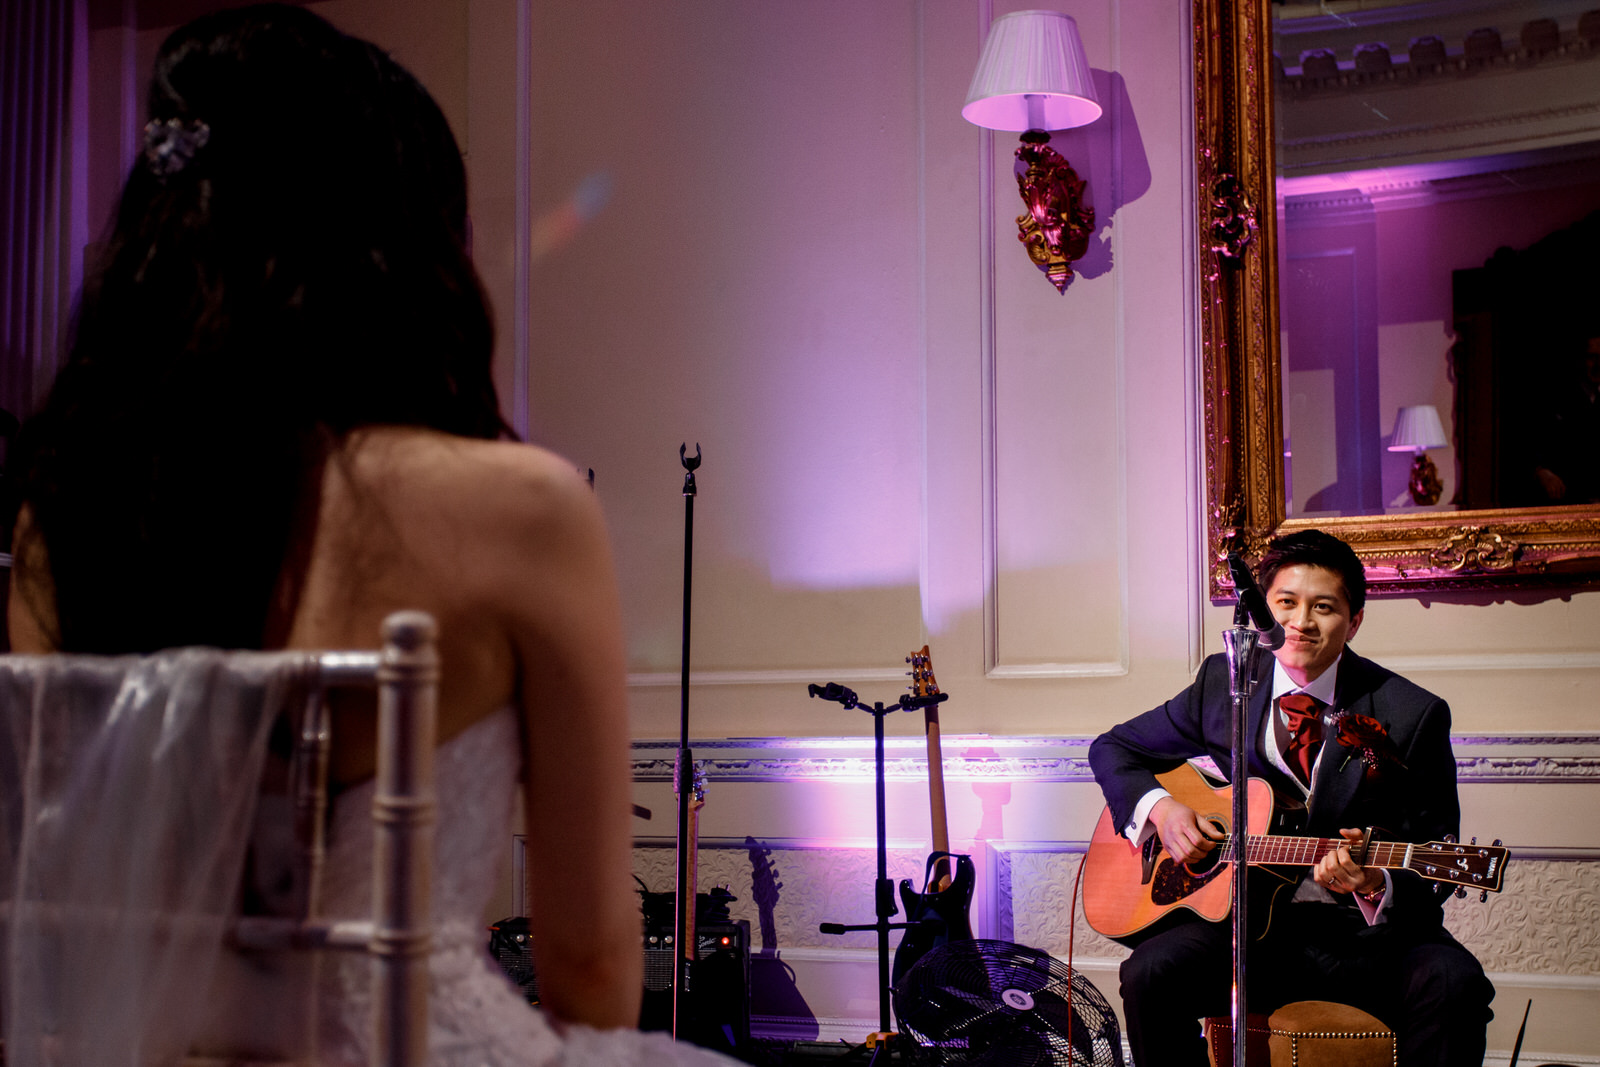 groom playing guitar and singing to bride